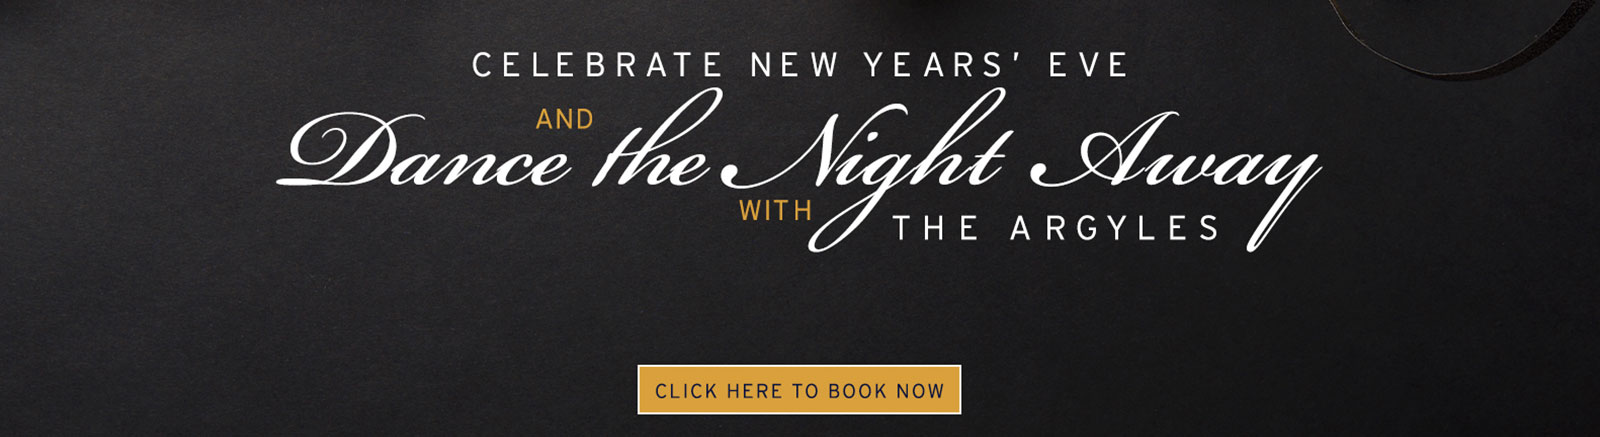 ring in the new year at horseshoe bay resort